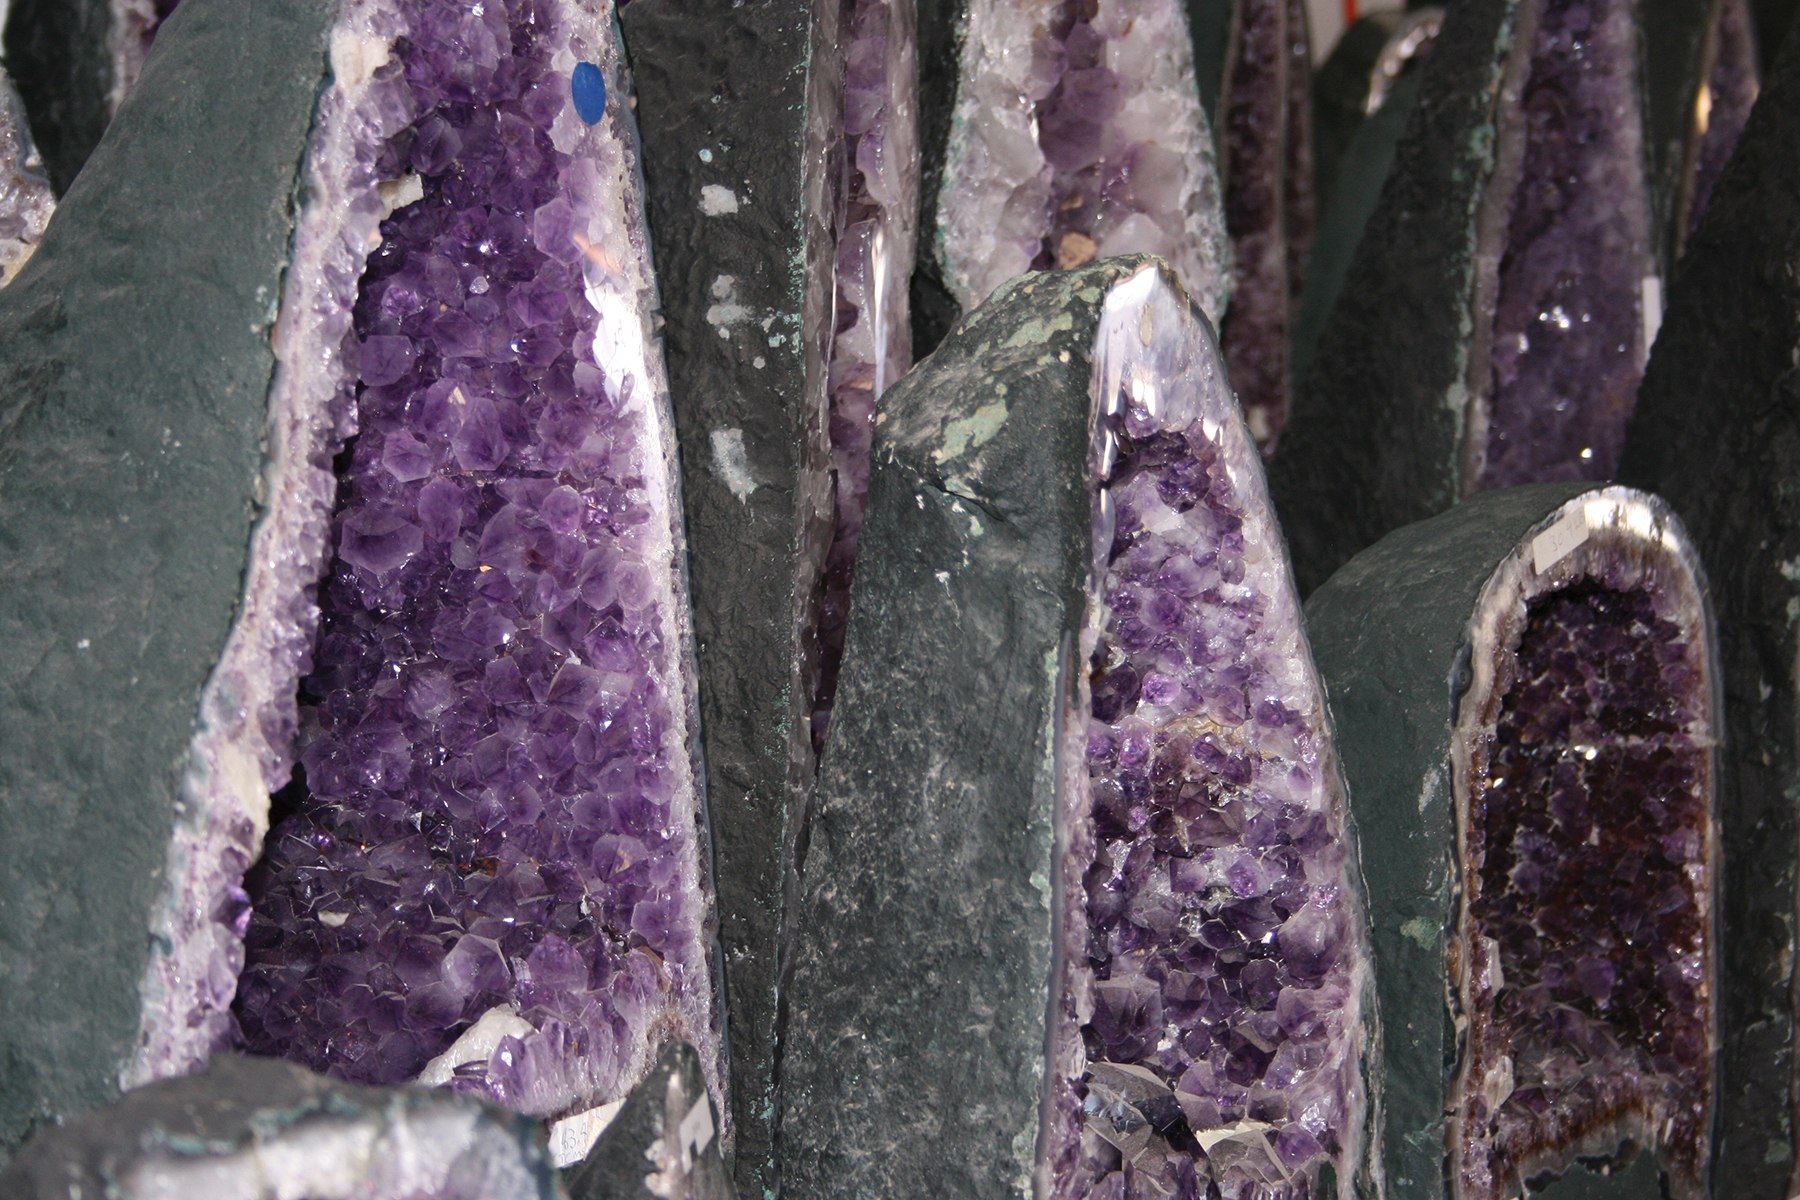 An amethyst tower is one of the quintessential showpieces you'll see at the shows. Photo Courtesy of Visit Tucson.